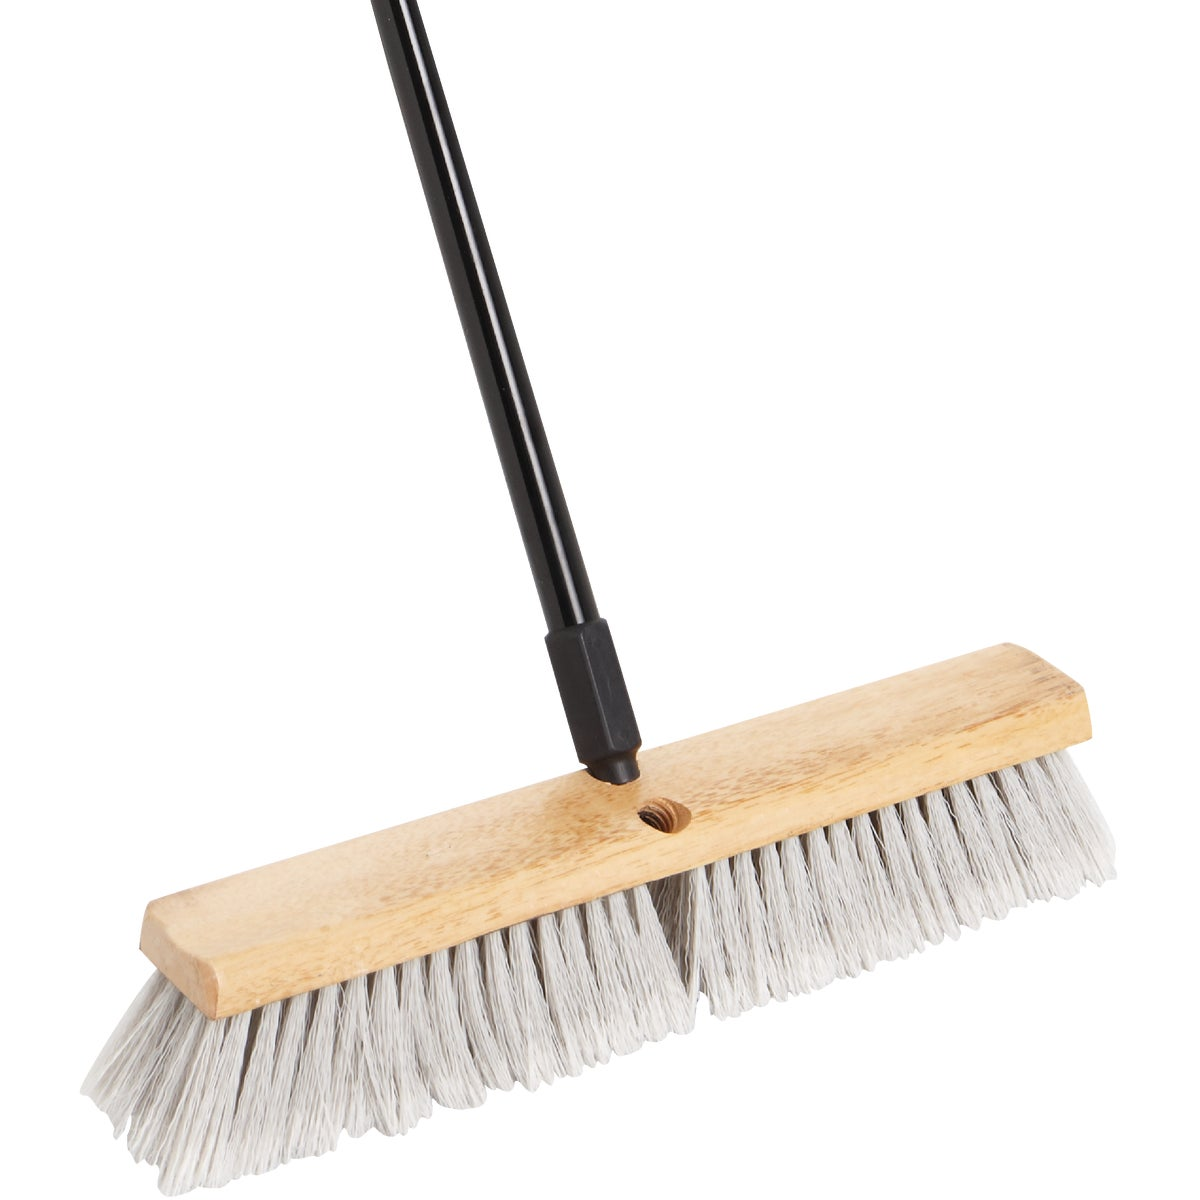 "18"" POLYSTY PUSH BROOM - DI89502 by D Q B Ind"